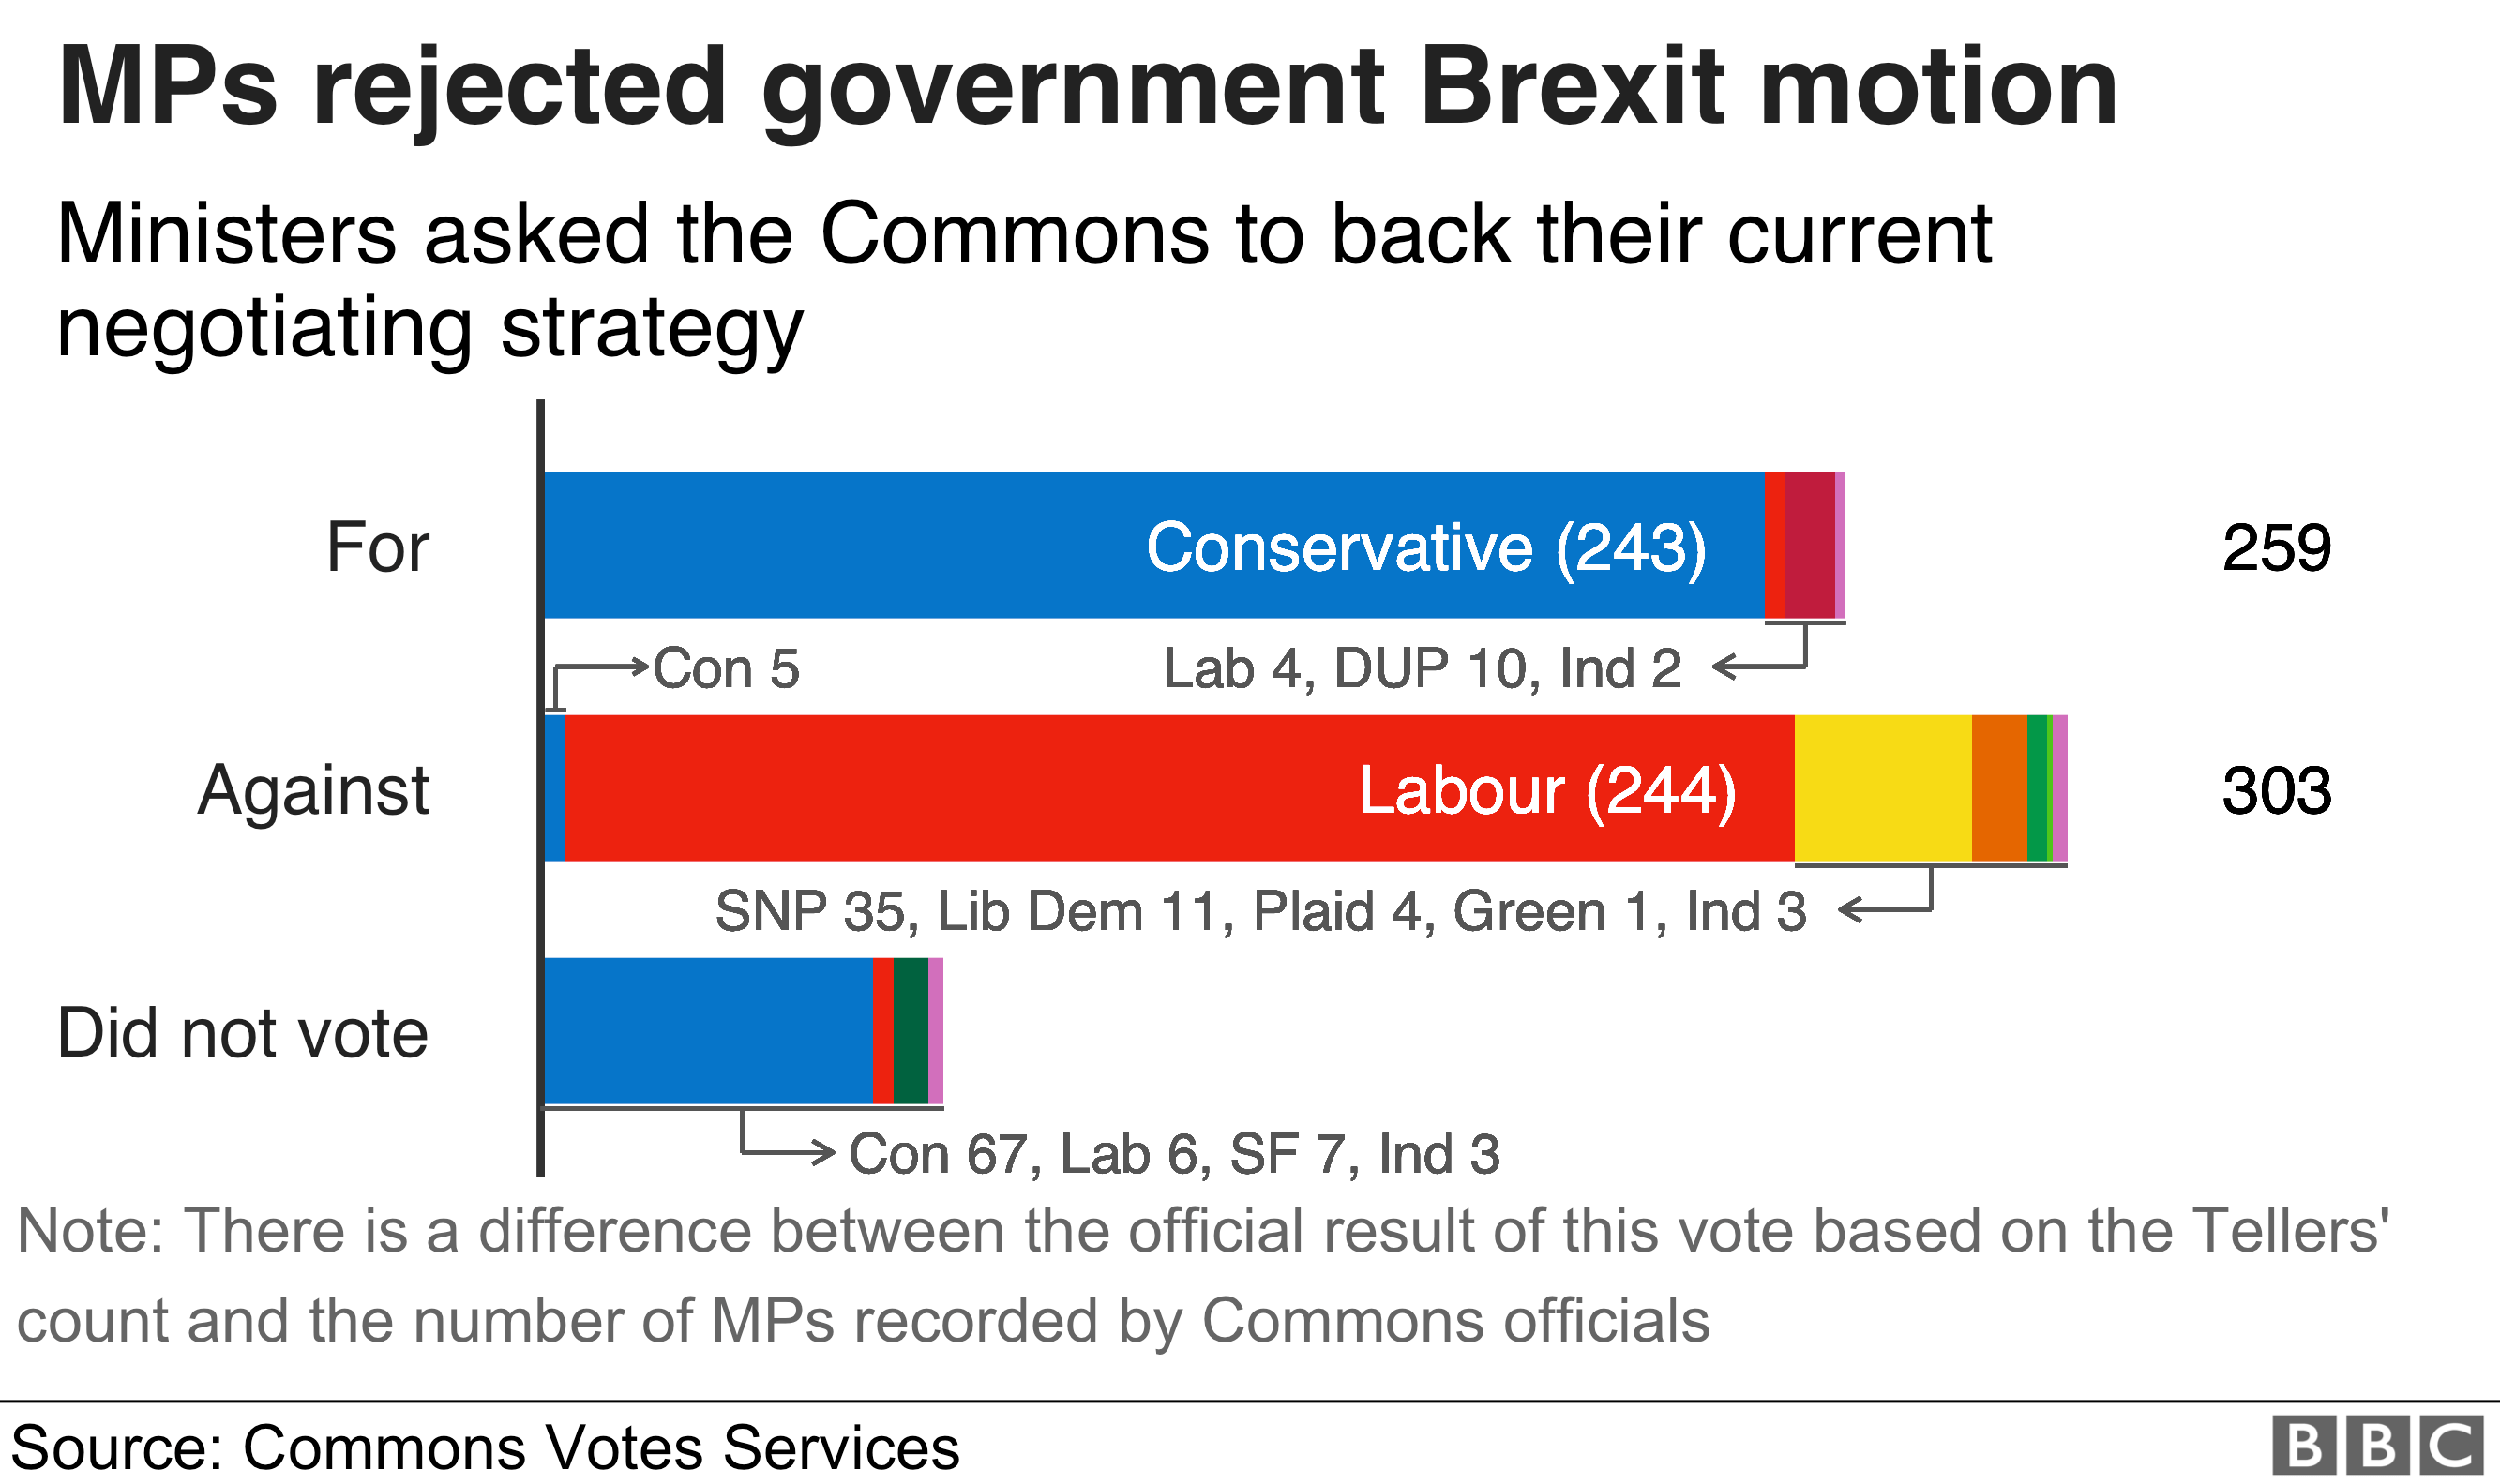 MPs rejected the government motion supporting its current Brexit strategy by 259 to 303